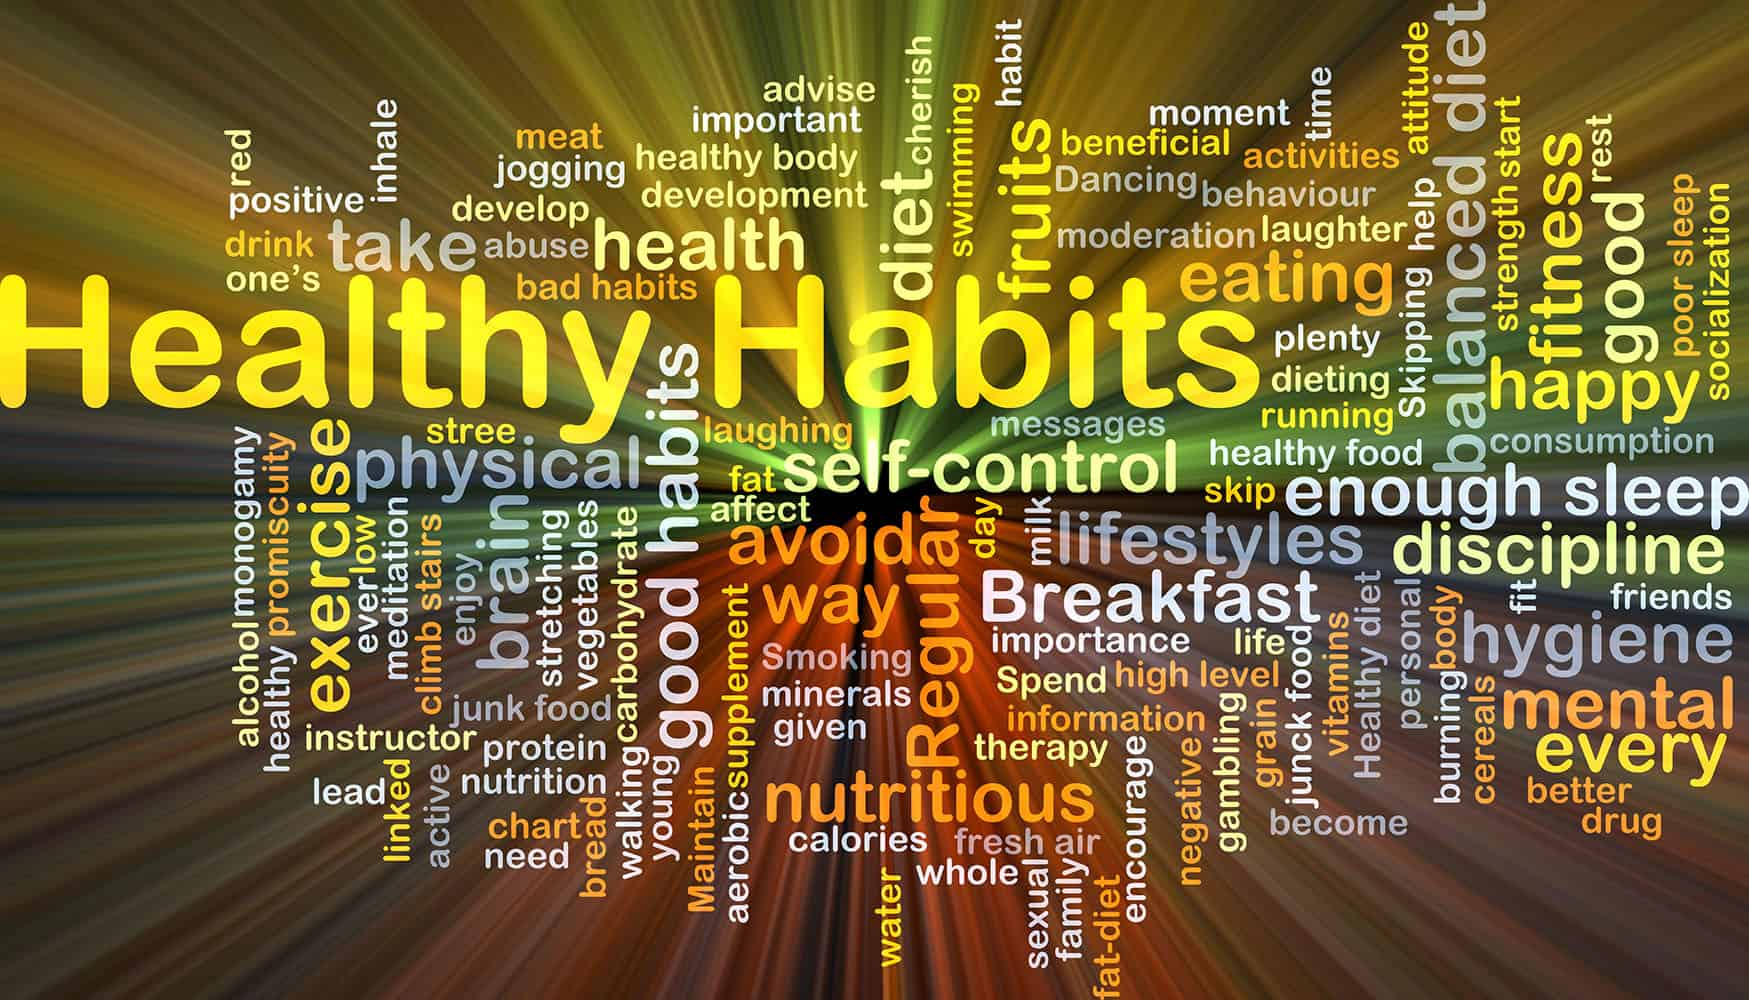 Developing Health Habits